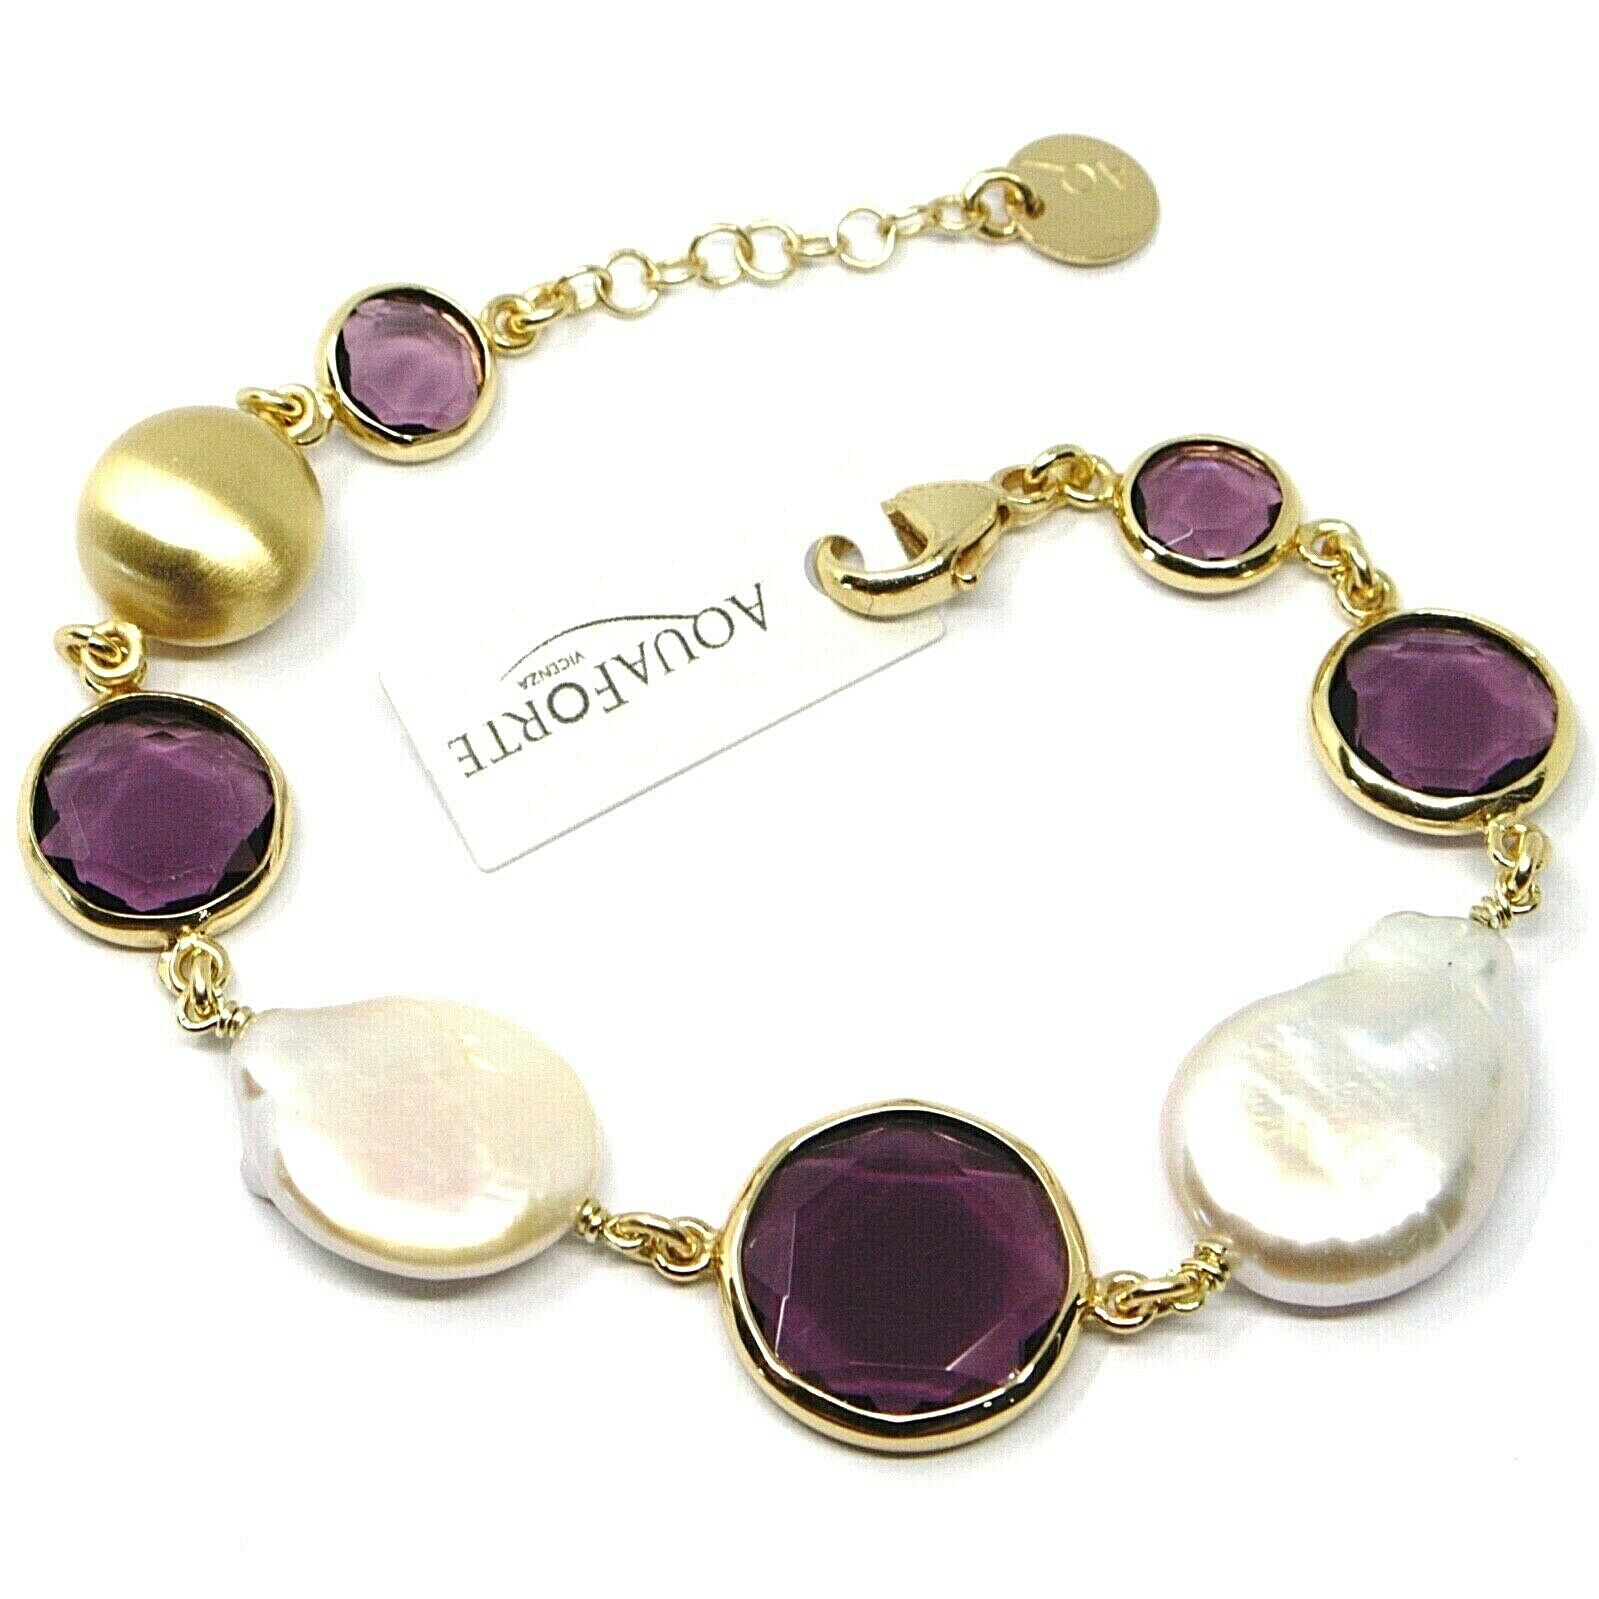 "925 STERLING SILVER YELLOW BRACELET 18cm, 7.1"" NUGGET, PURPLE GLASS PASTE PEARL"